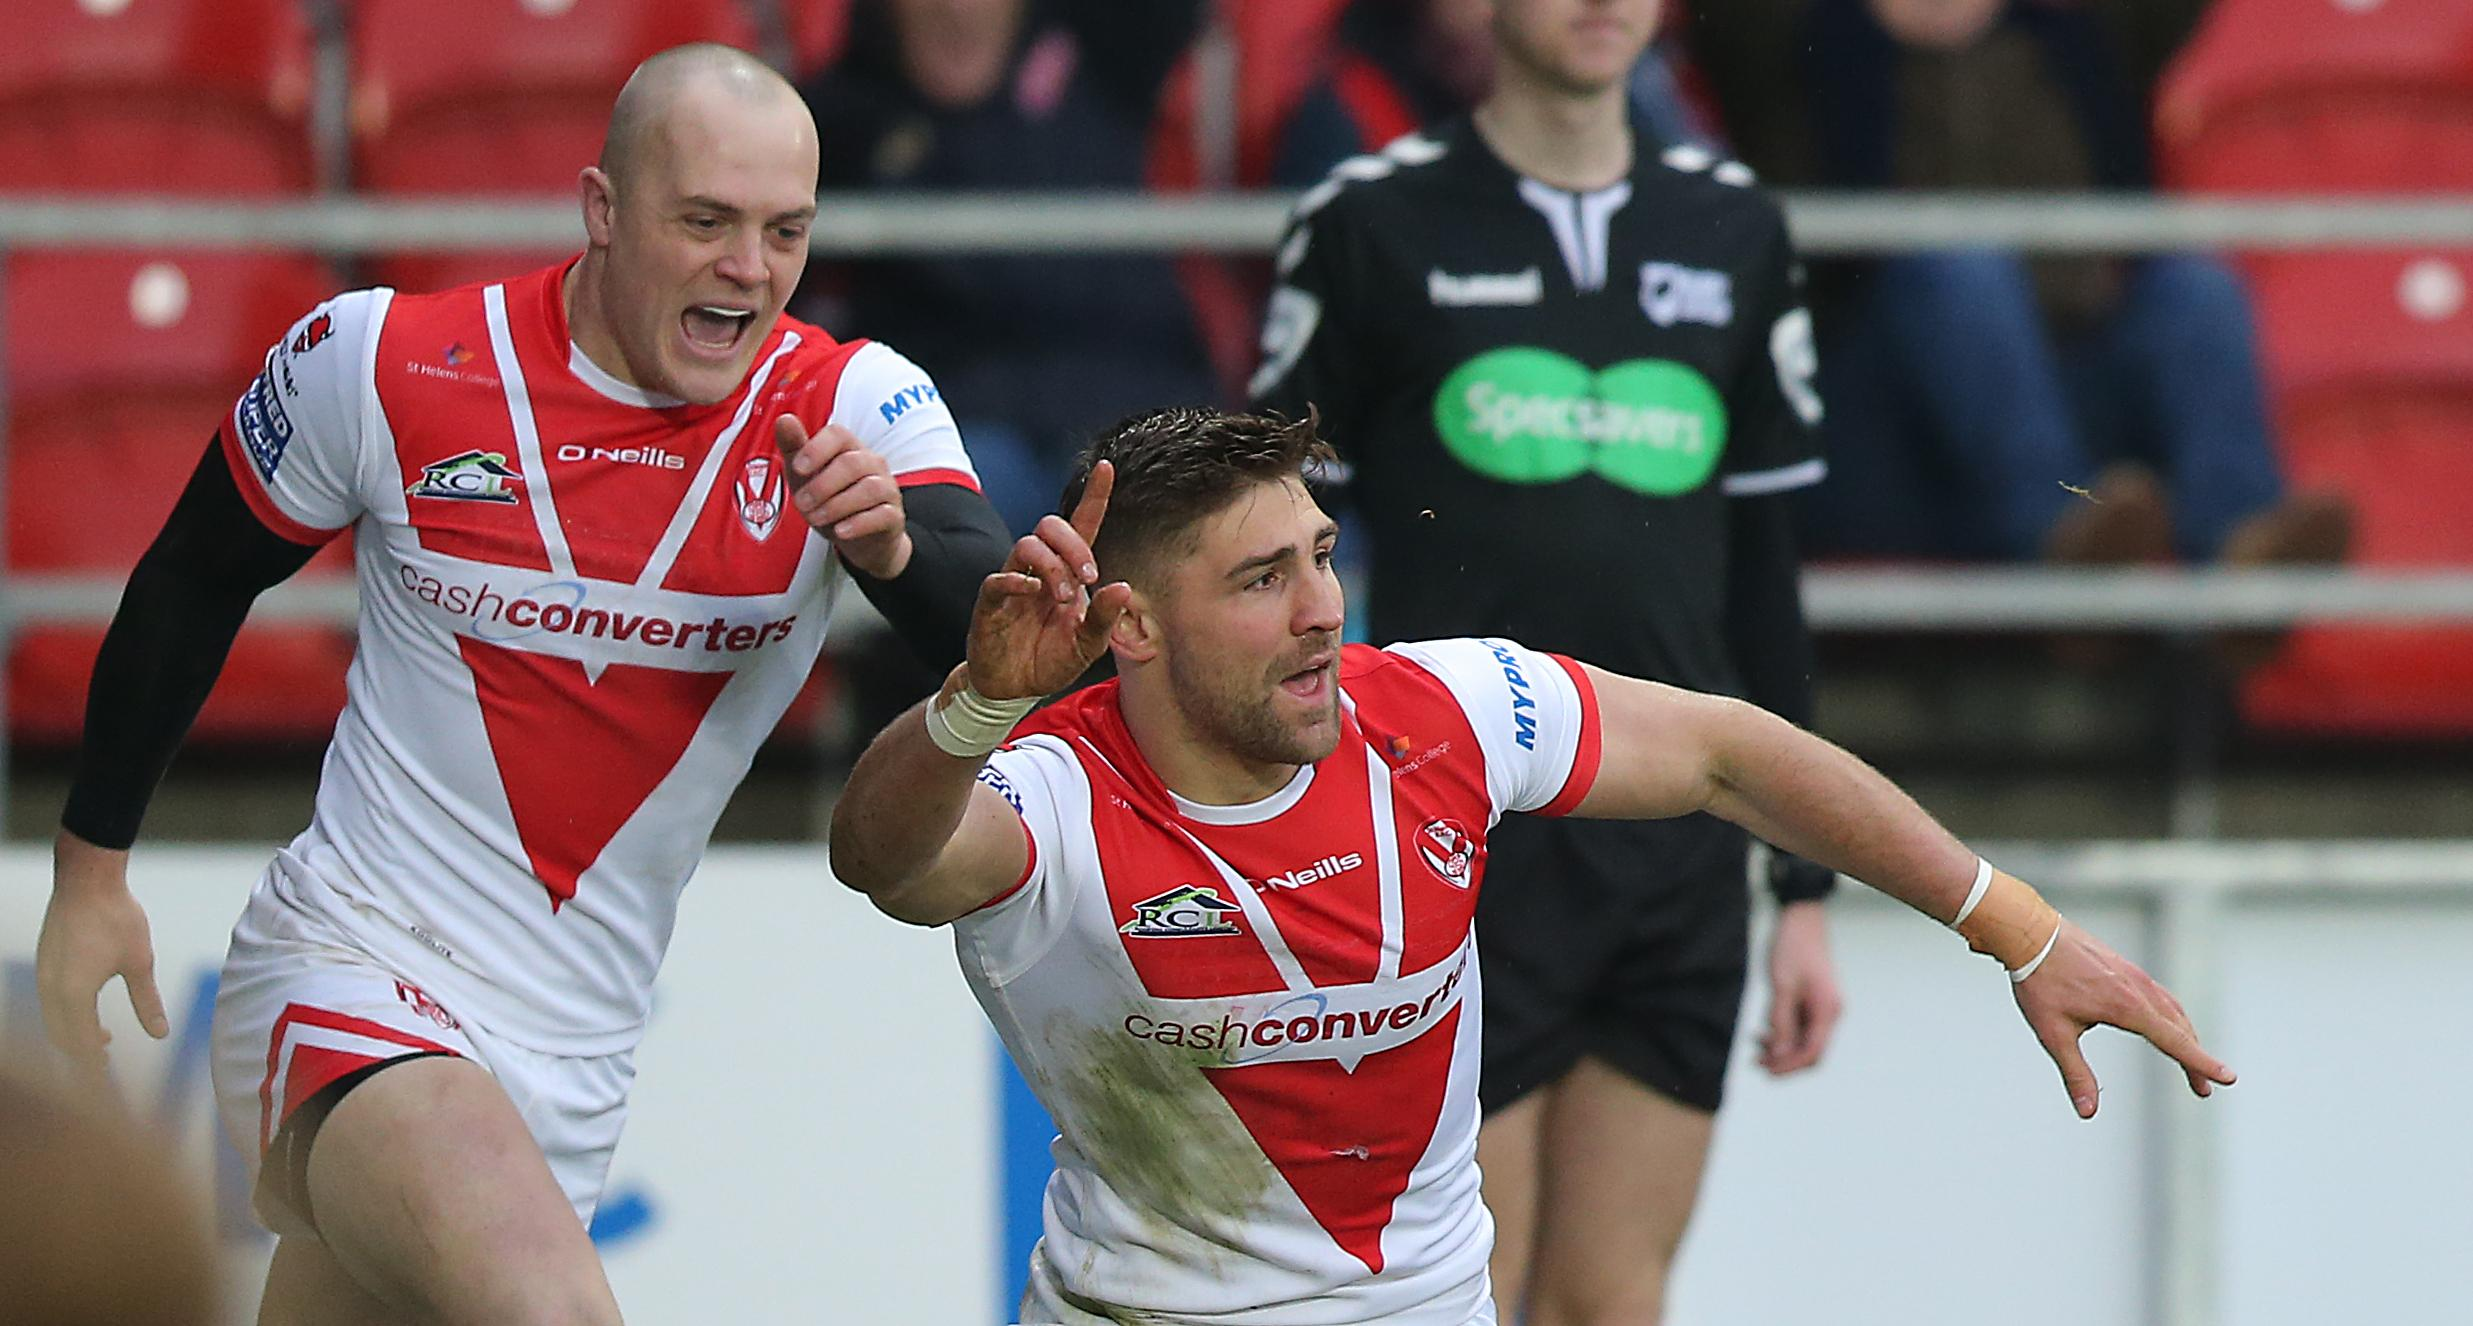 St Helens star Tommy Makinson has also been called up by England